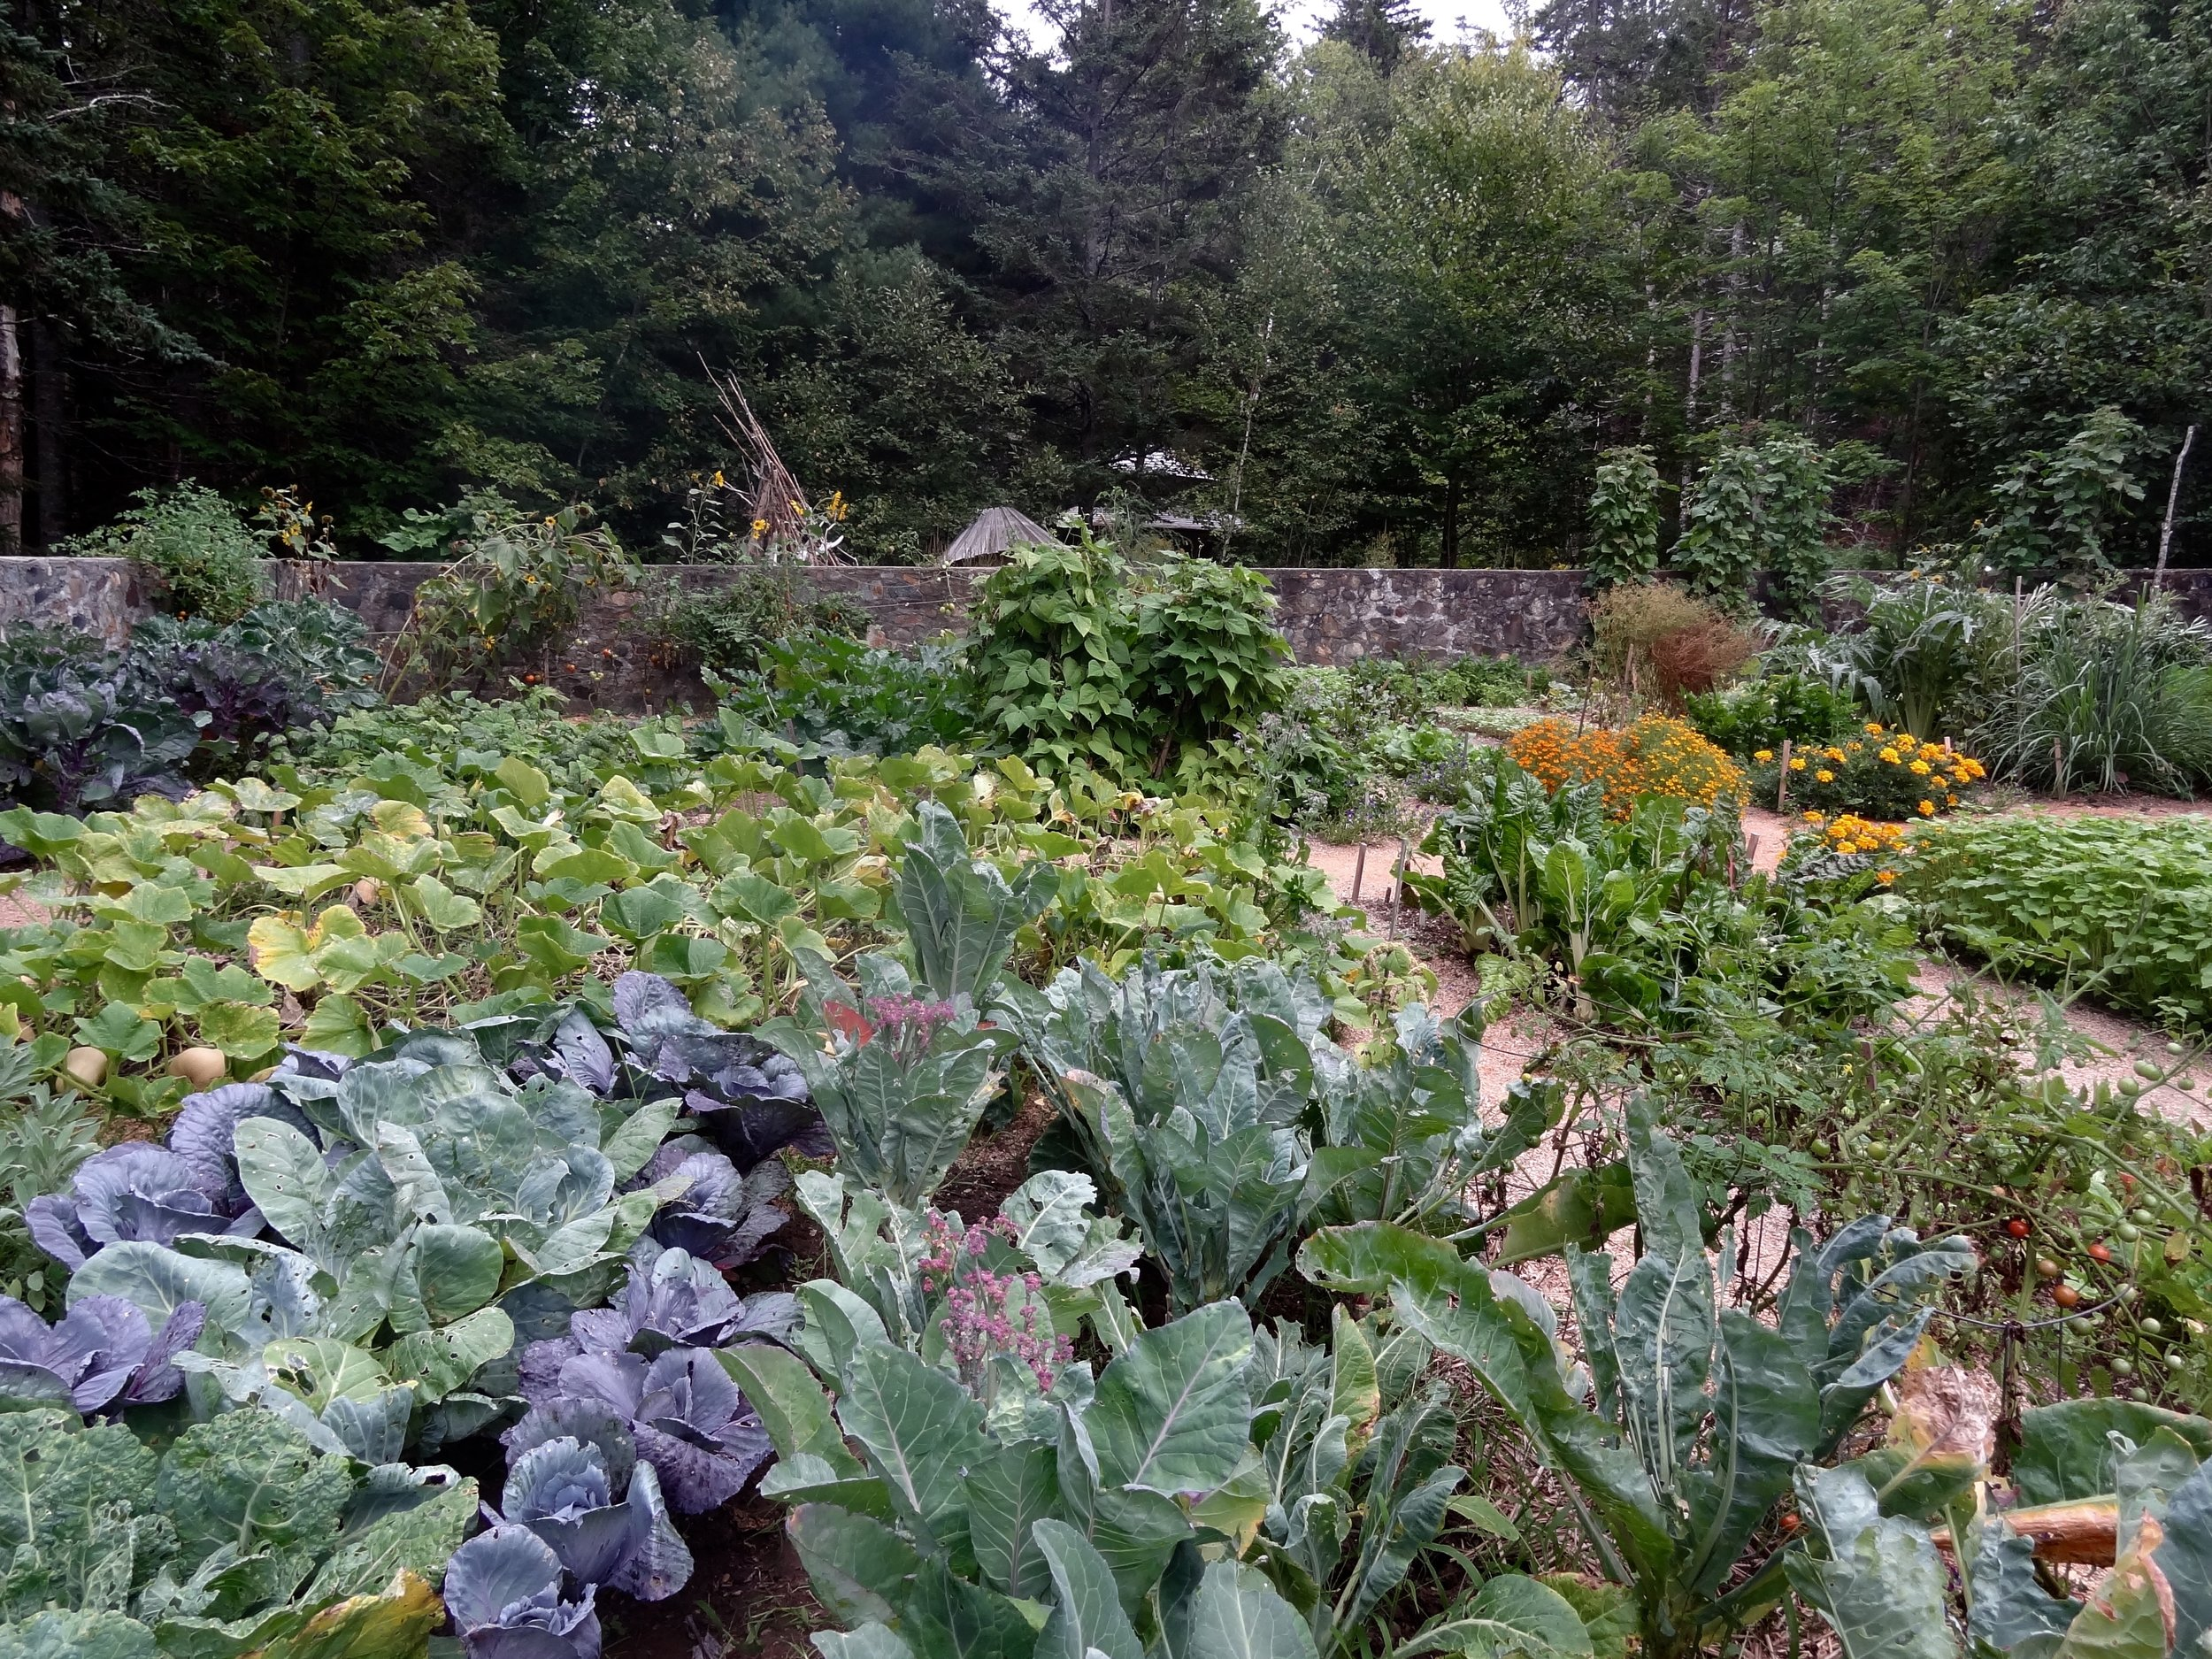 """The Good Life Center is surrounded by beautiful gardens, some amazing hand-built yurts, a greenhouse and toolshed. At the time of my visit, it was being tended to by caretakers (known as """"residents"""")Claire Briguglio and Sam Adels."""